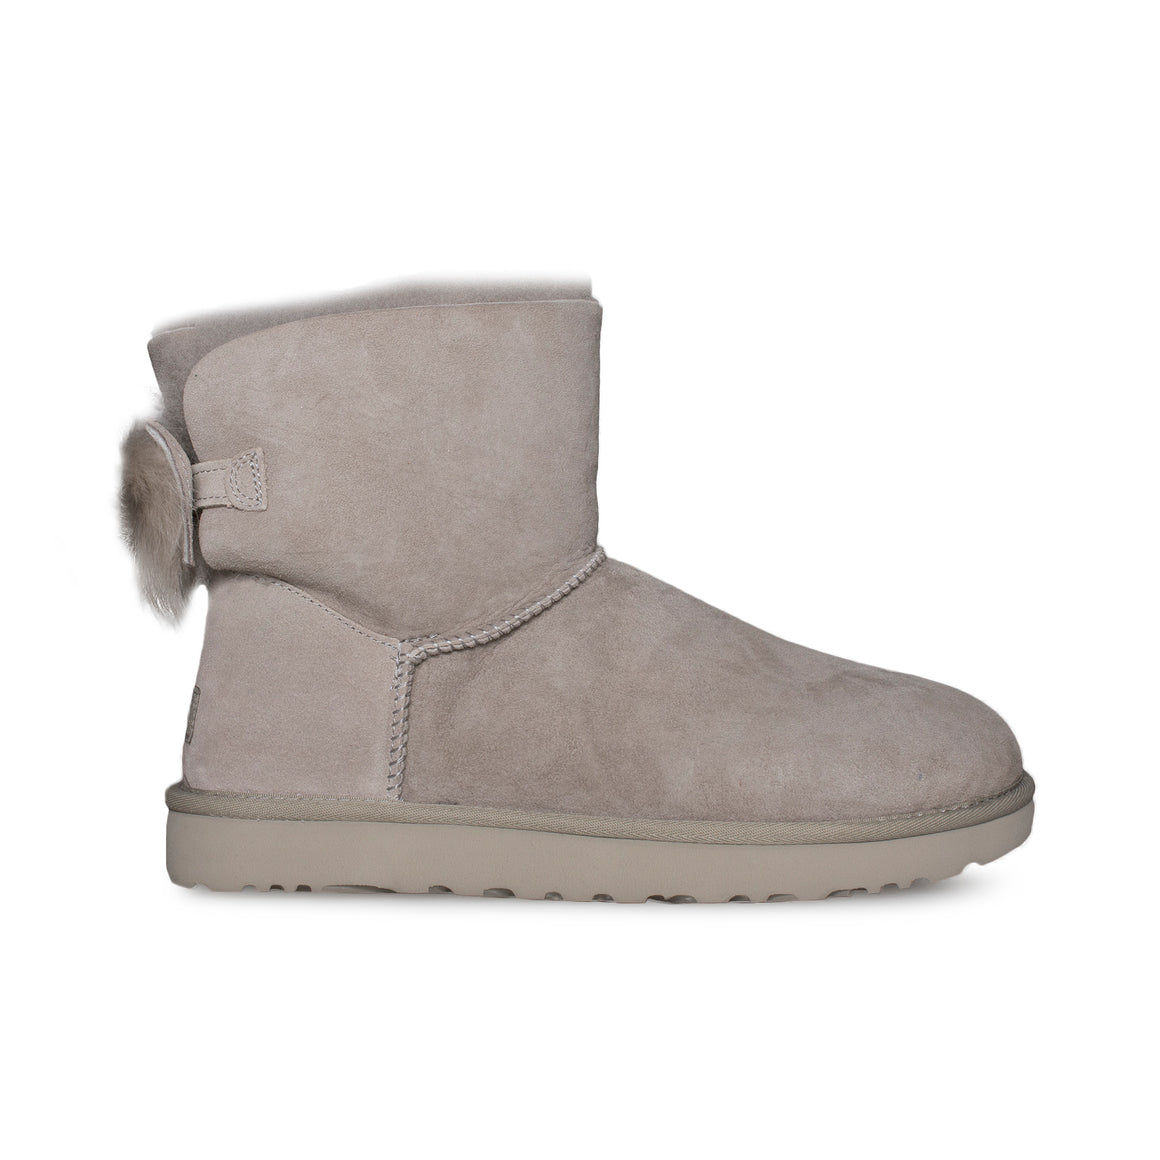 UGG Fluff Bow Mini Willow Boots - Women's